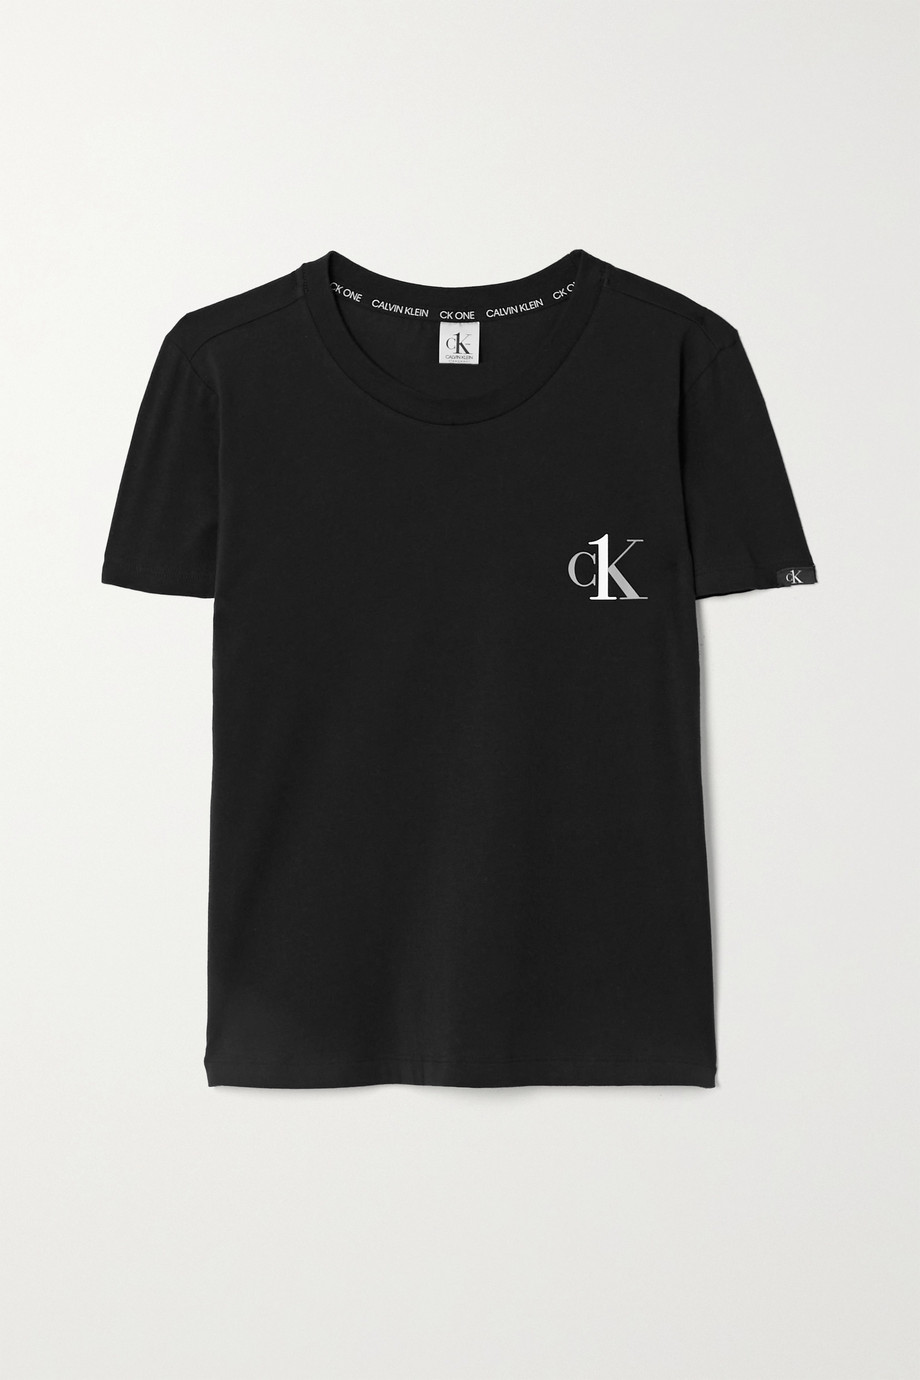 CALVIN KLEIN UNDERWEAR CK One printed stretch-cotton jersey T-shirt